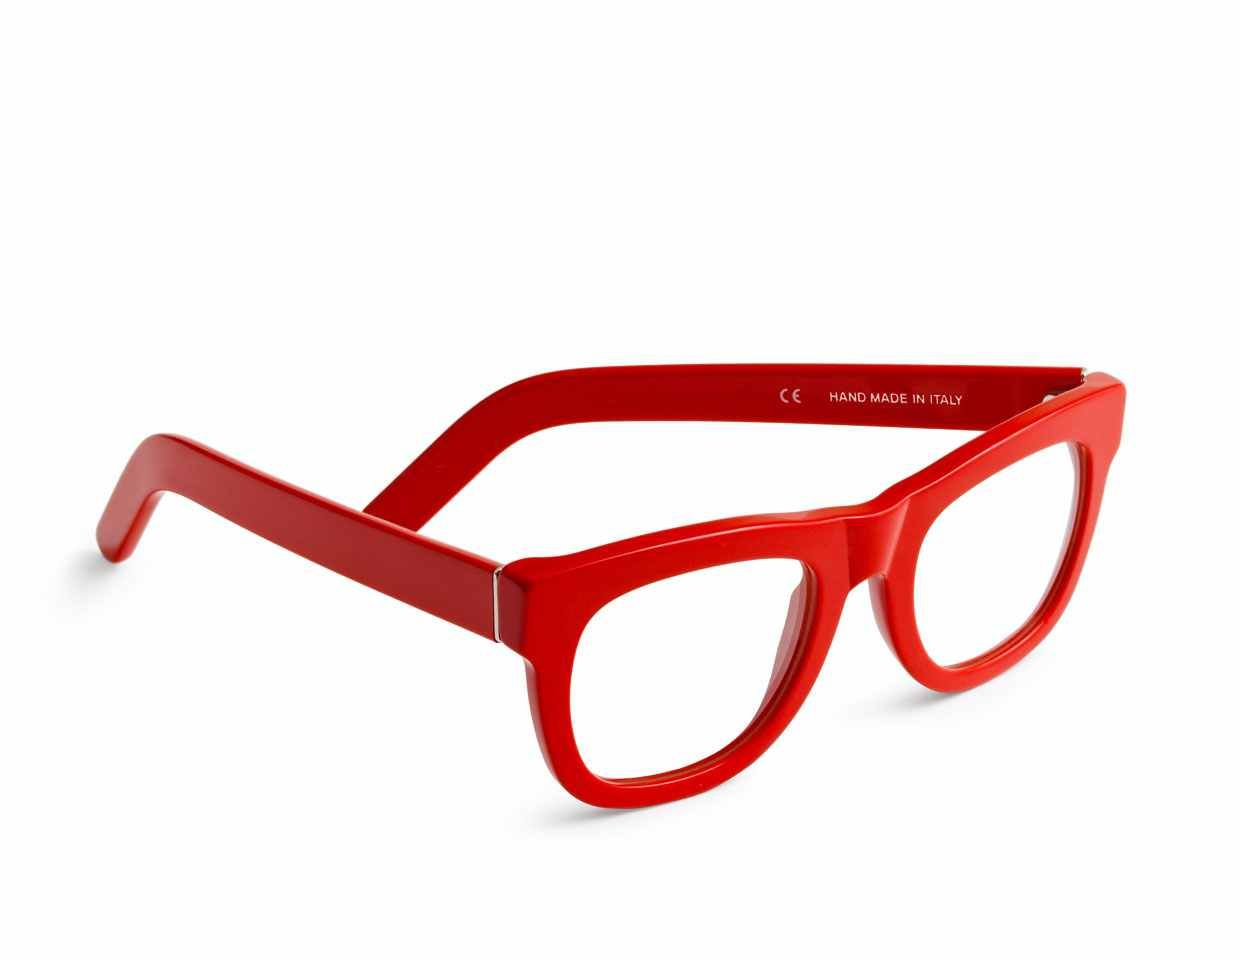 4993751ed28 Discovered  Glasses+Handmade+in+Italy at J.Crew